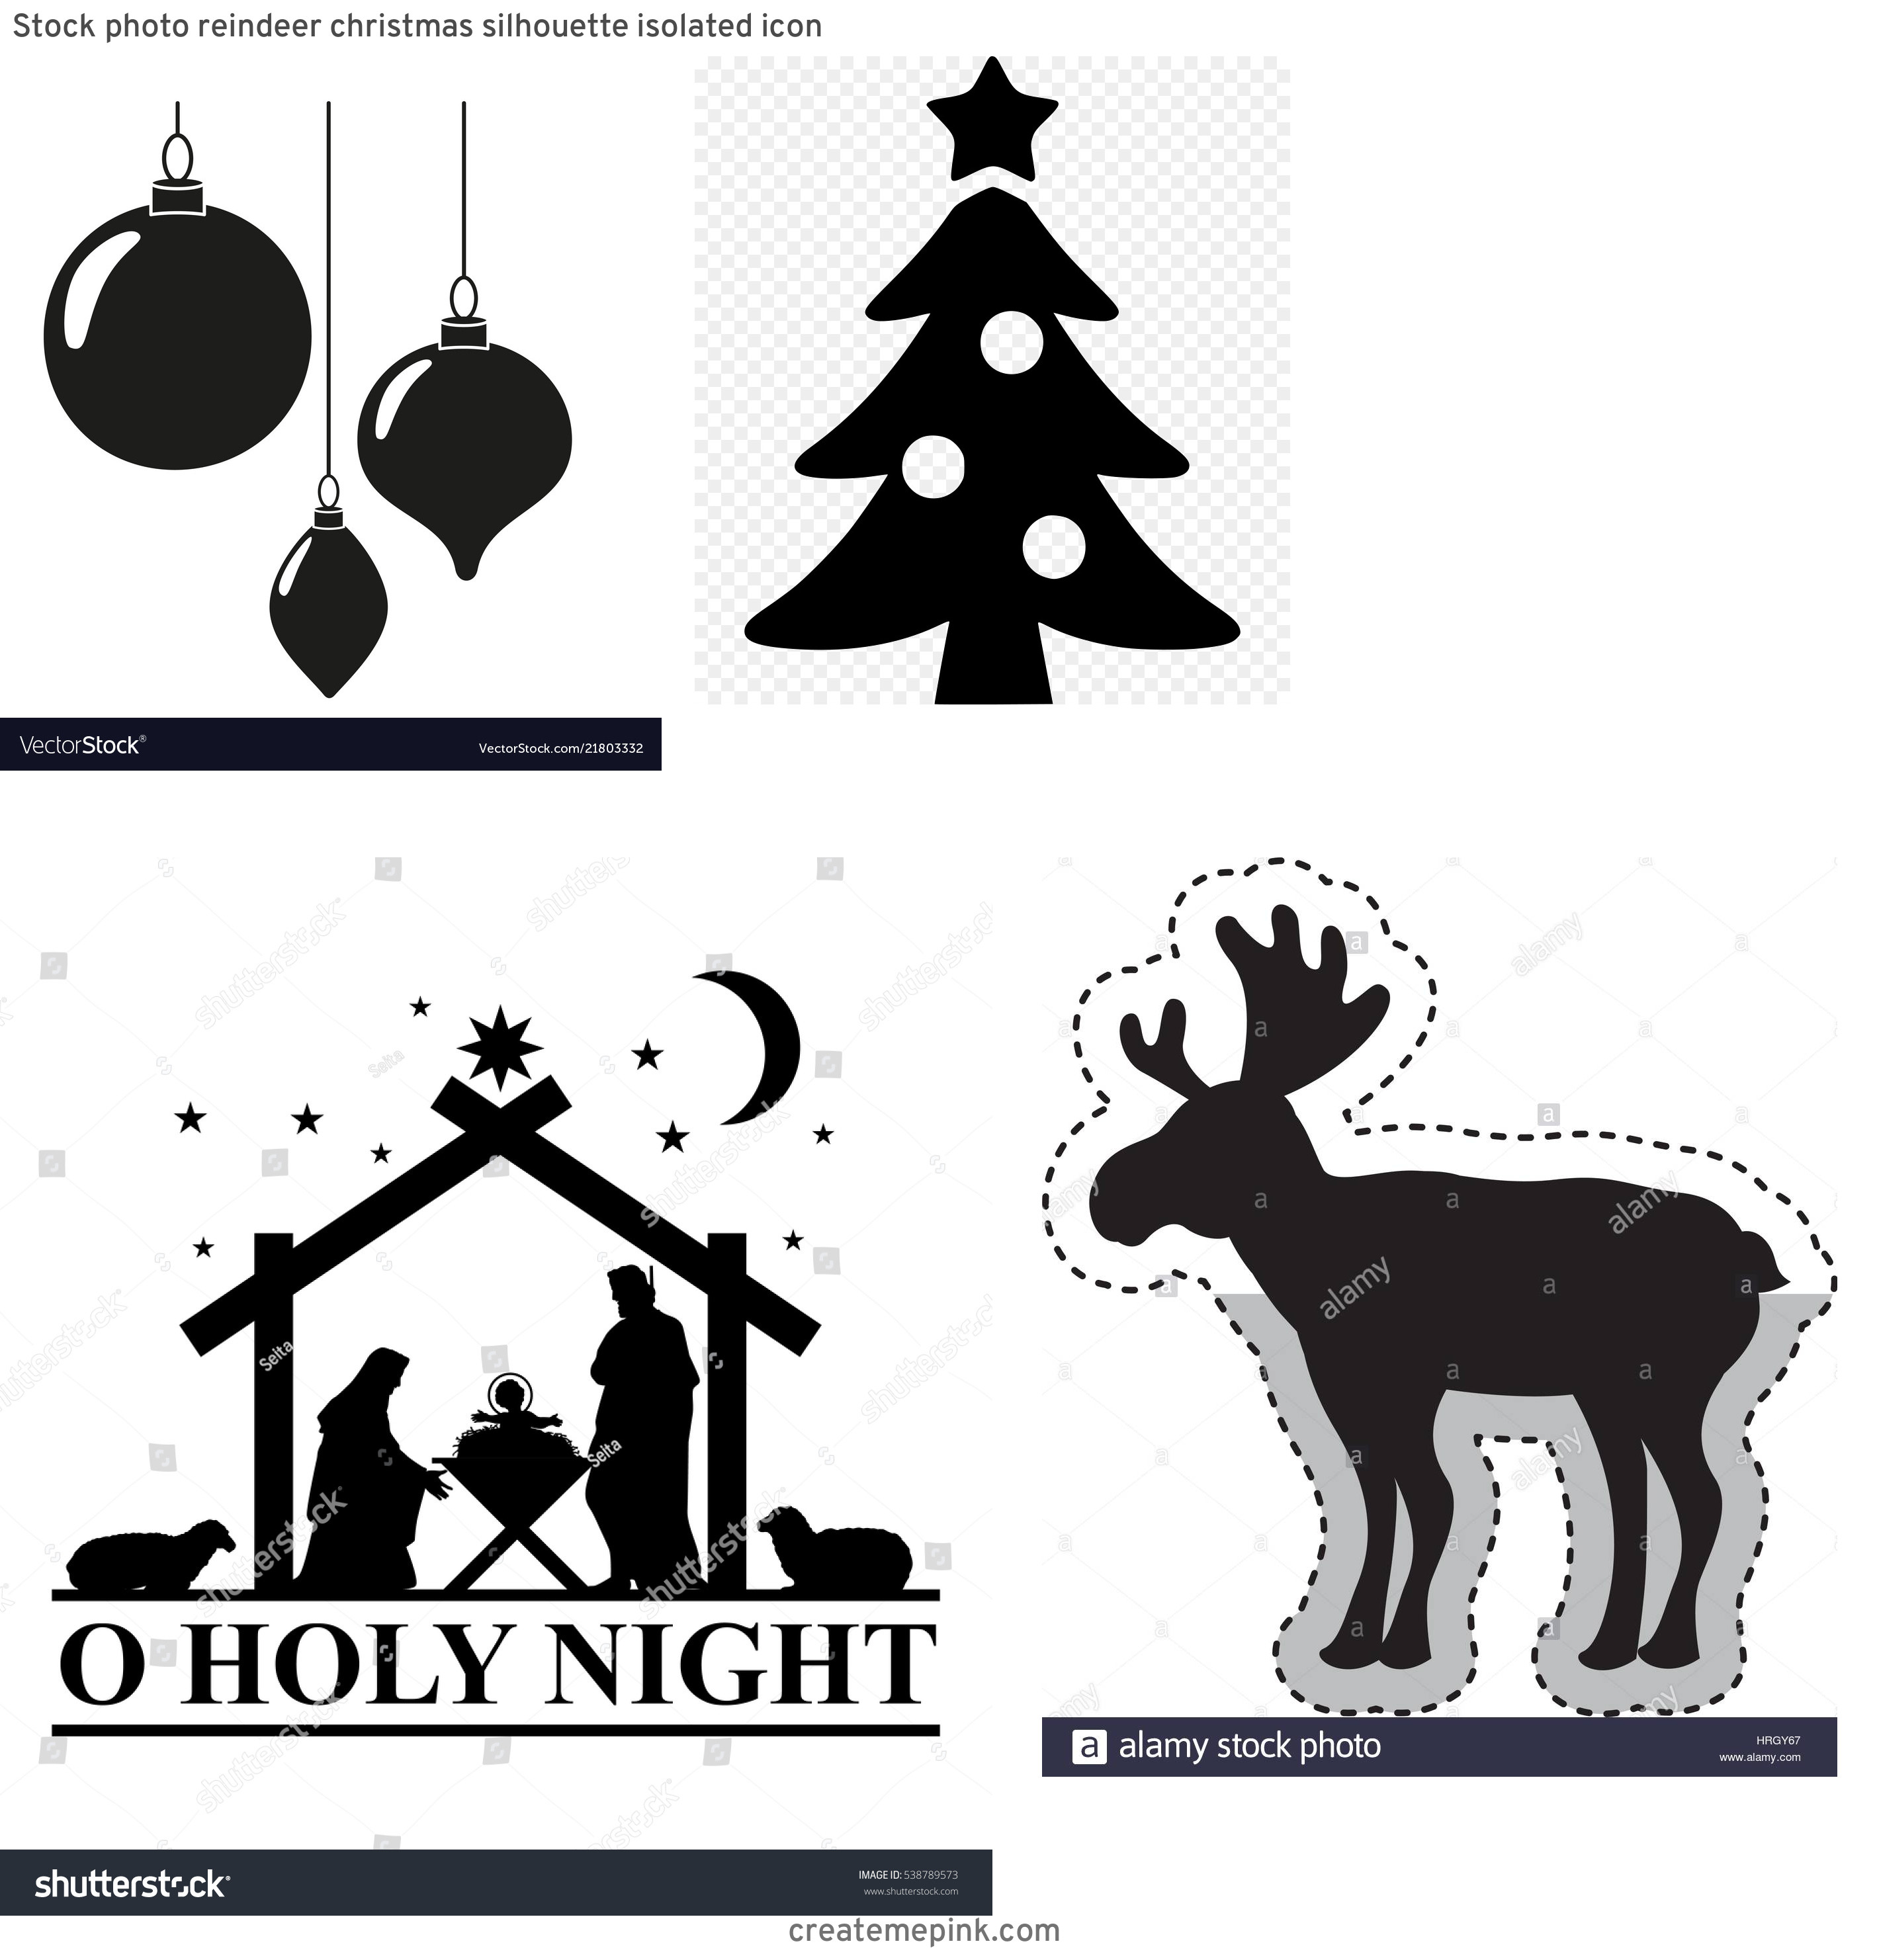 Christmas Silohette Vector: Stock Photo Reindeer Christmas Silhouette Isolated Icon